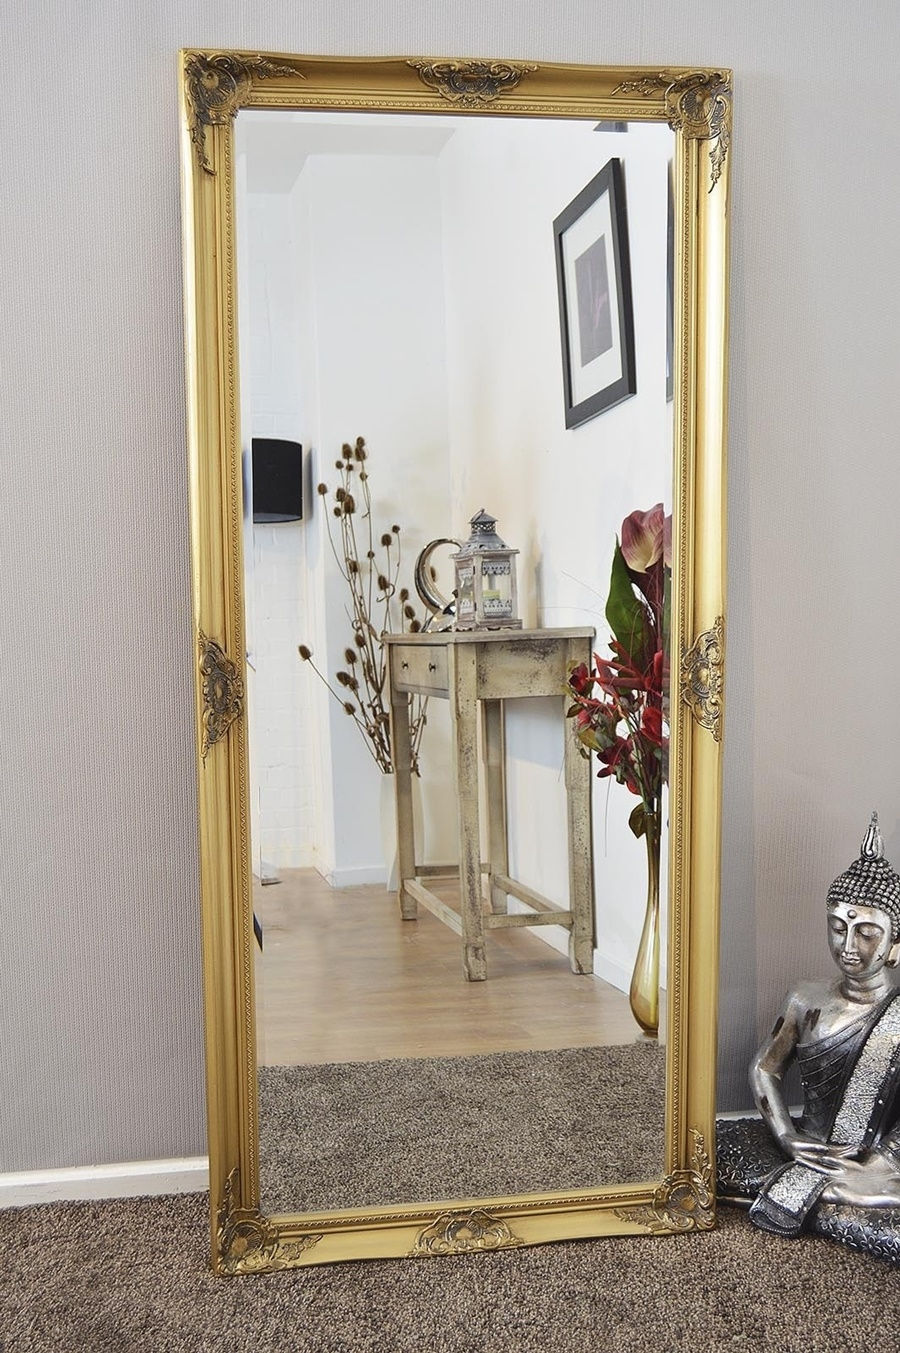 How To Refinish Old Gold Framed Wall Mirror Doherty House Within Old Style Mirror (View 14 of 15)